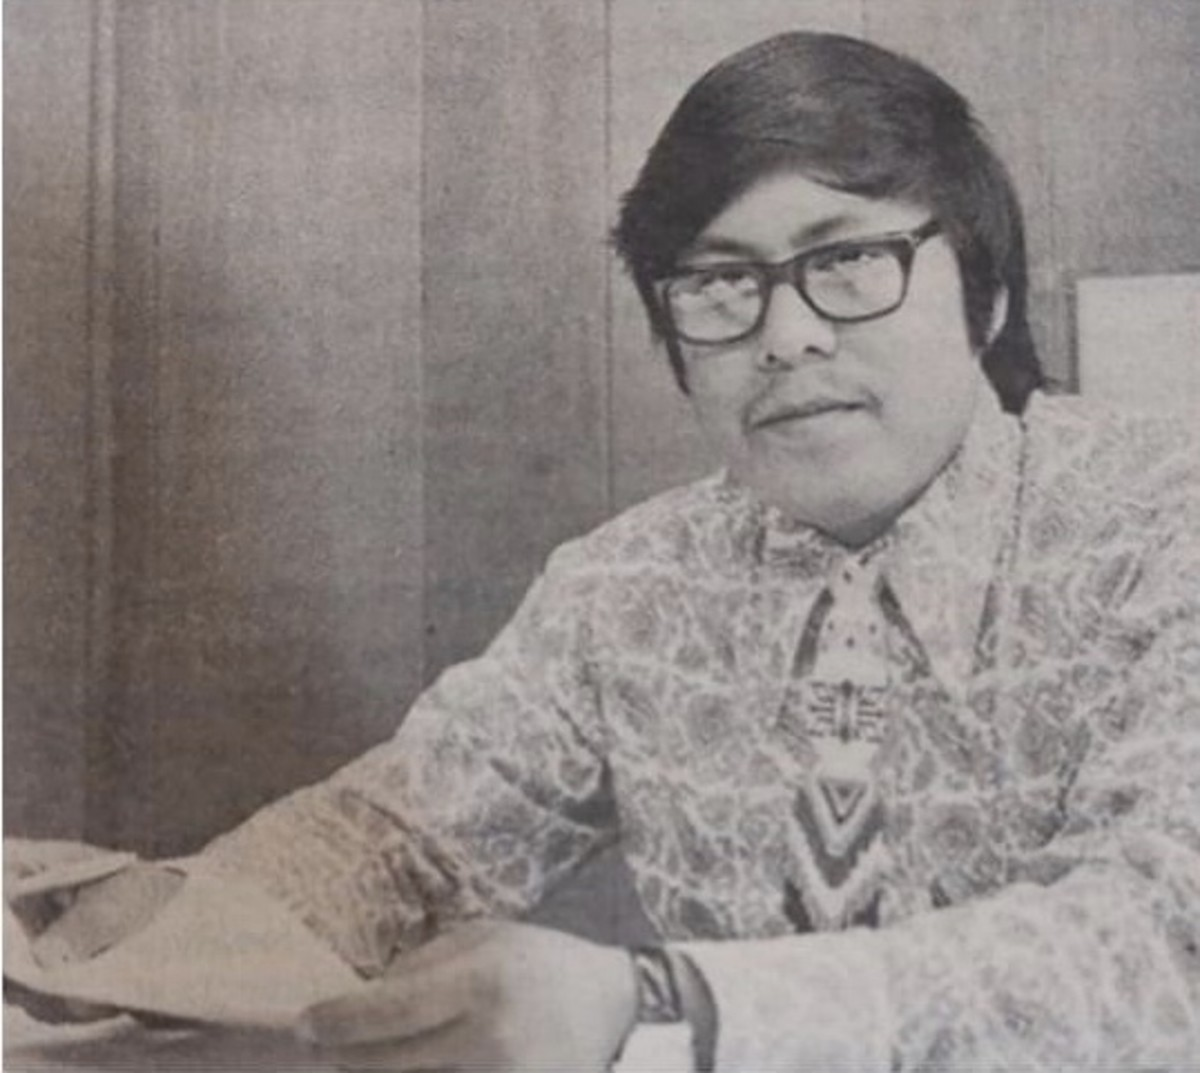 Reuben Teesatuskie was editor of the Cherokee One Feather from 1974 - 1977. (Photo Courtesy of The Cherokee One Feather)